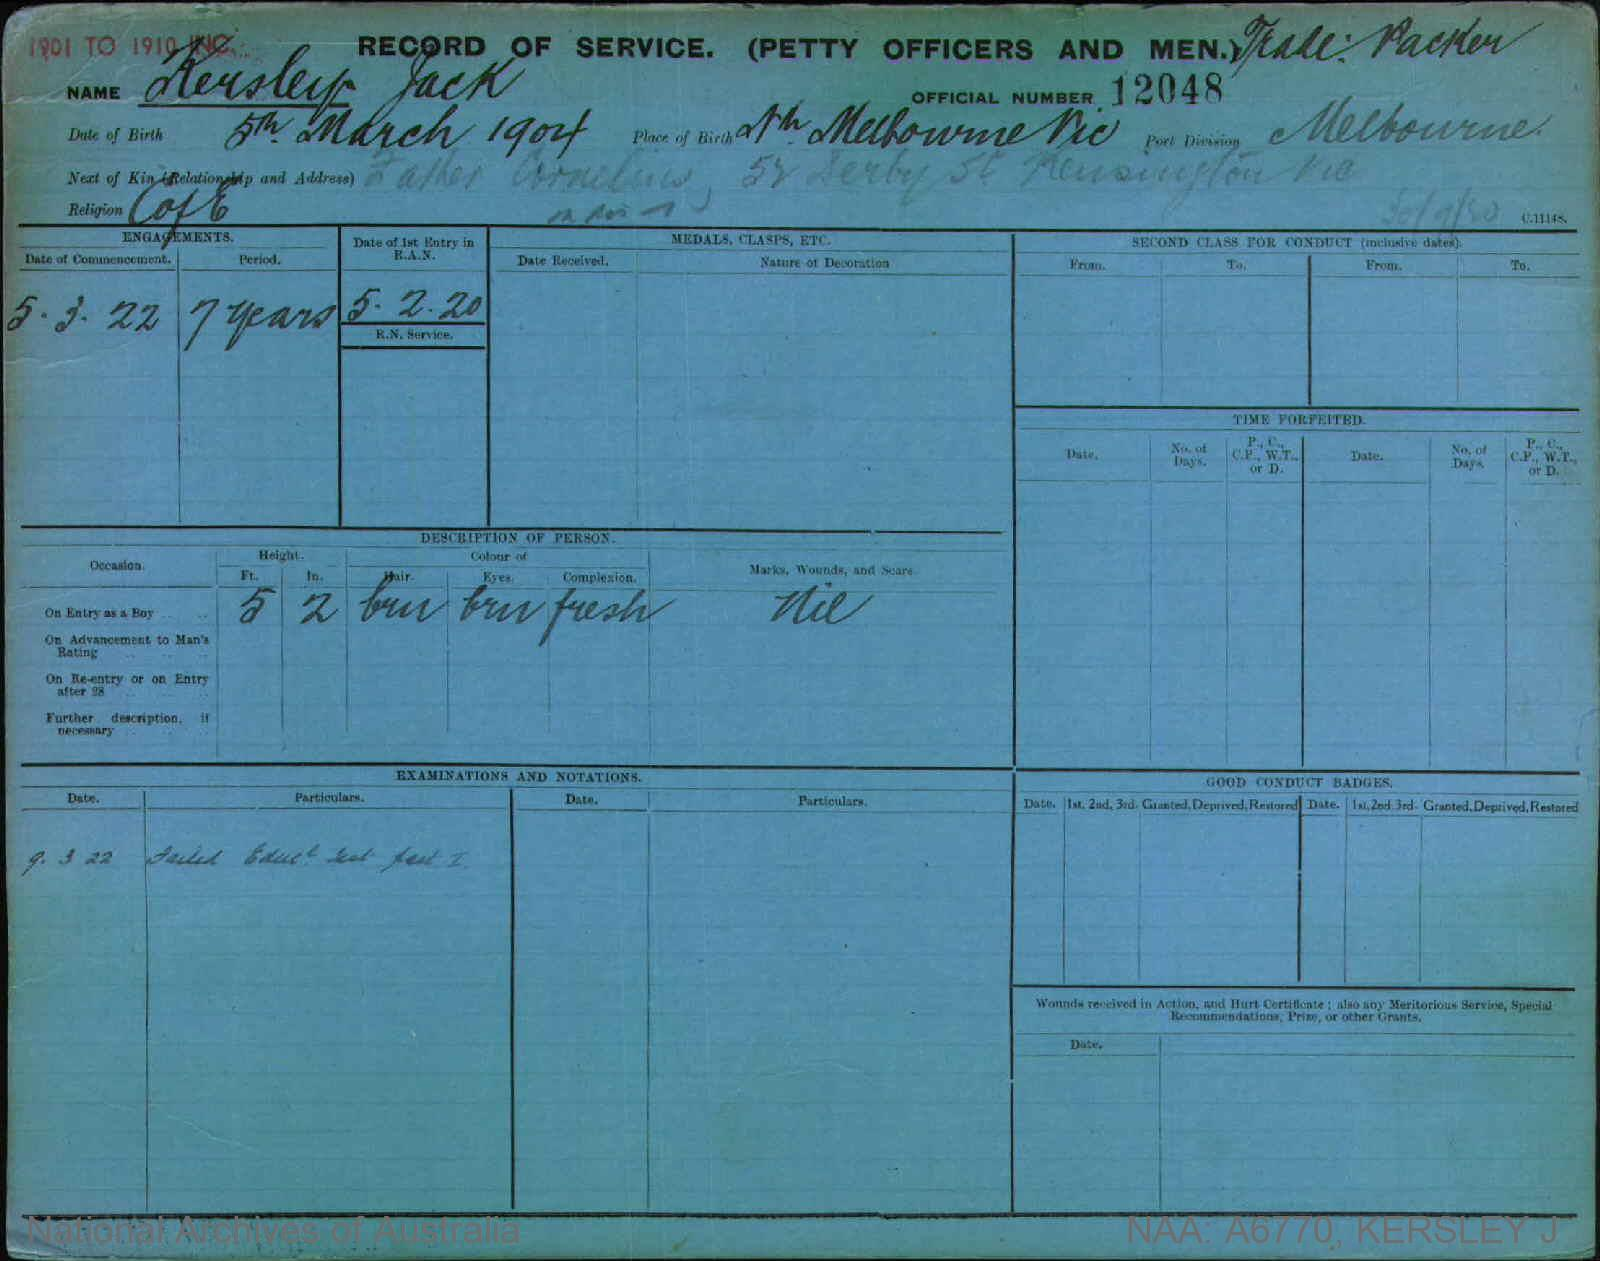 KERSLEY JACK : Service Number - 12048 : Date of birth - 05 Mar 1904 : Place of birth - NTH MELBOURNE VIC : Place of enlistment - MELBOURNE : Next of Kin - CORNELIUS